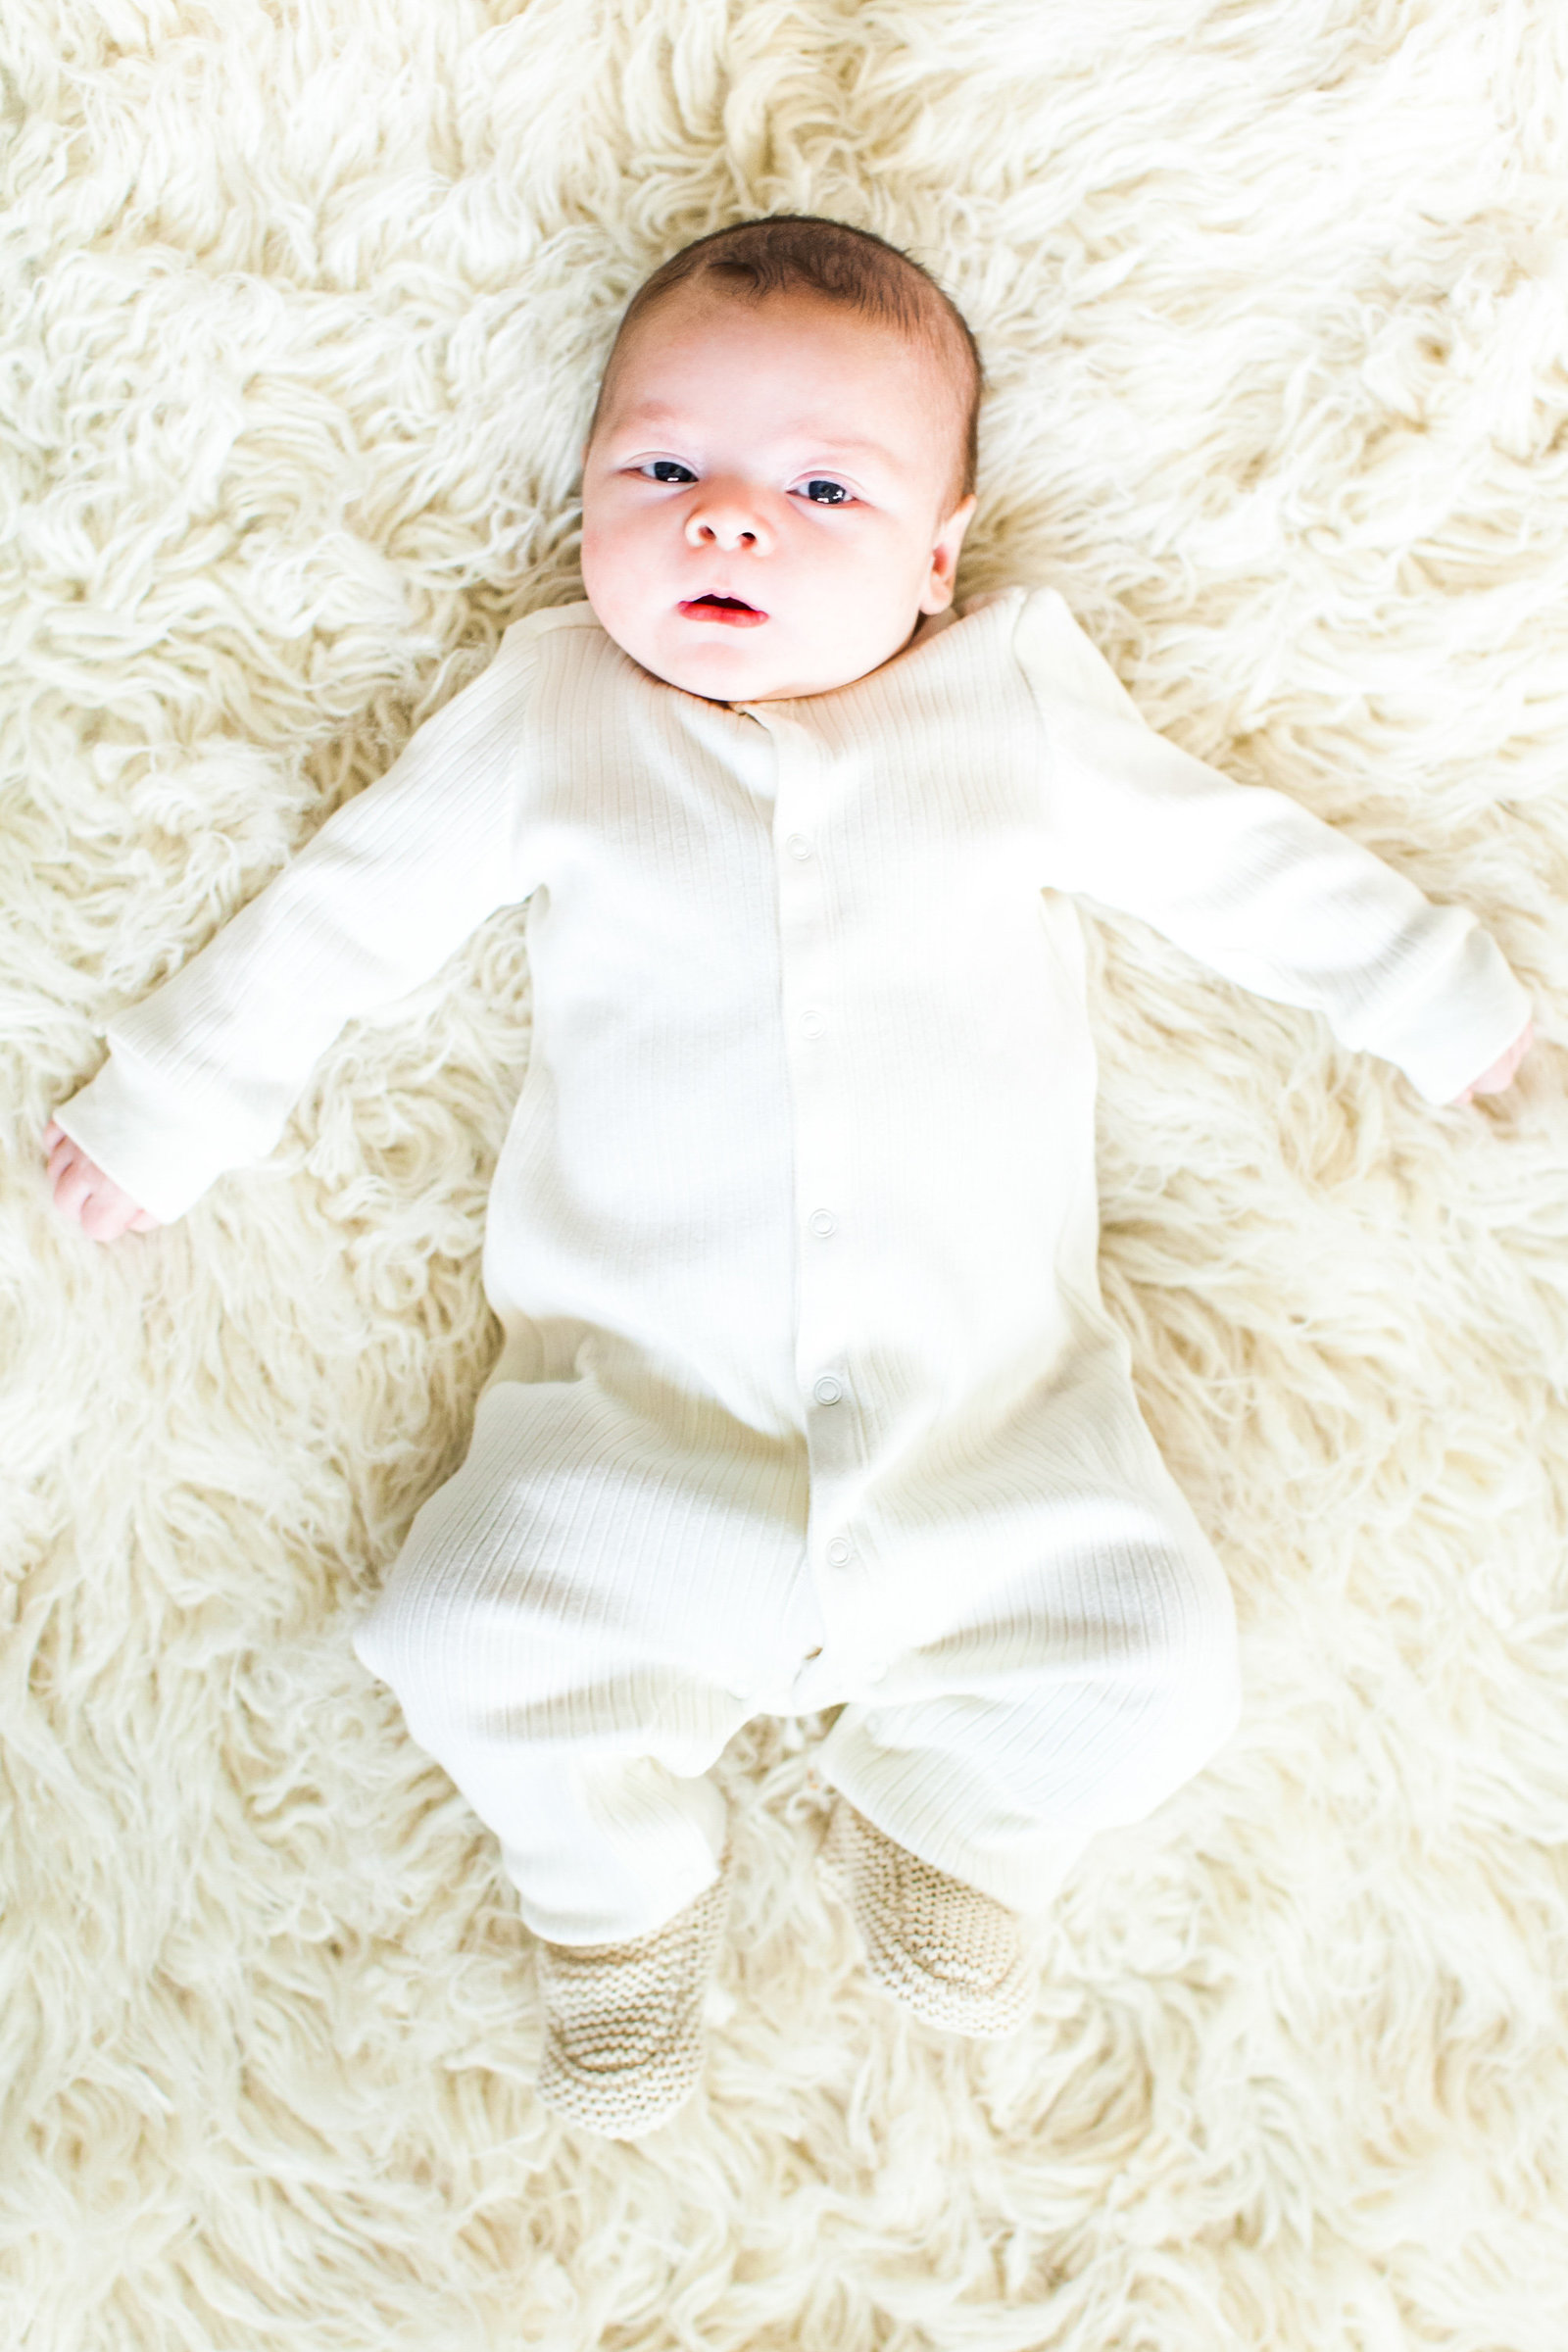 Newborn on faux fur rug in all white